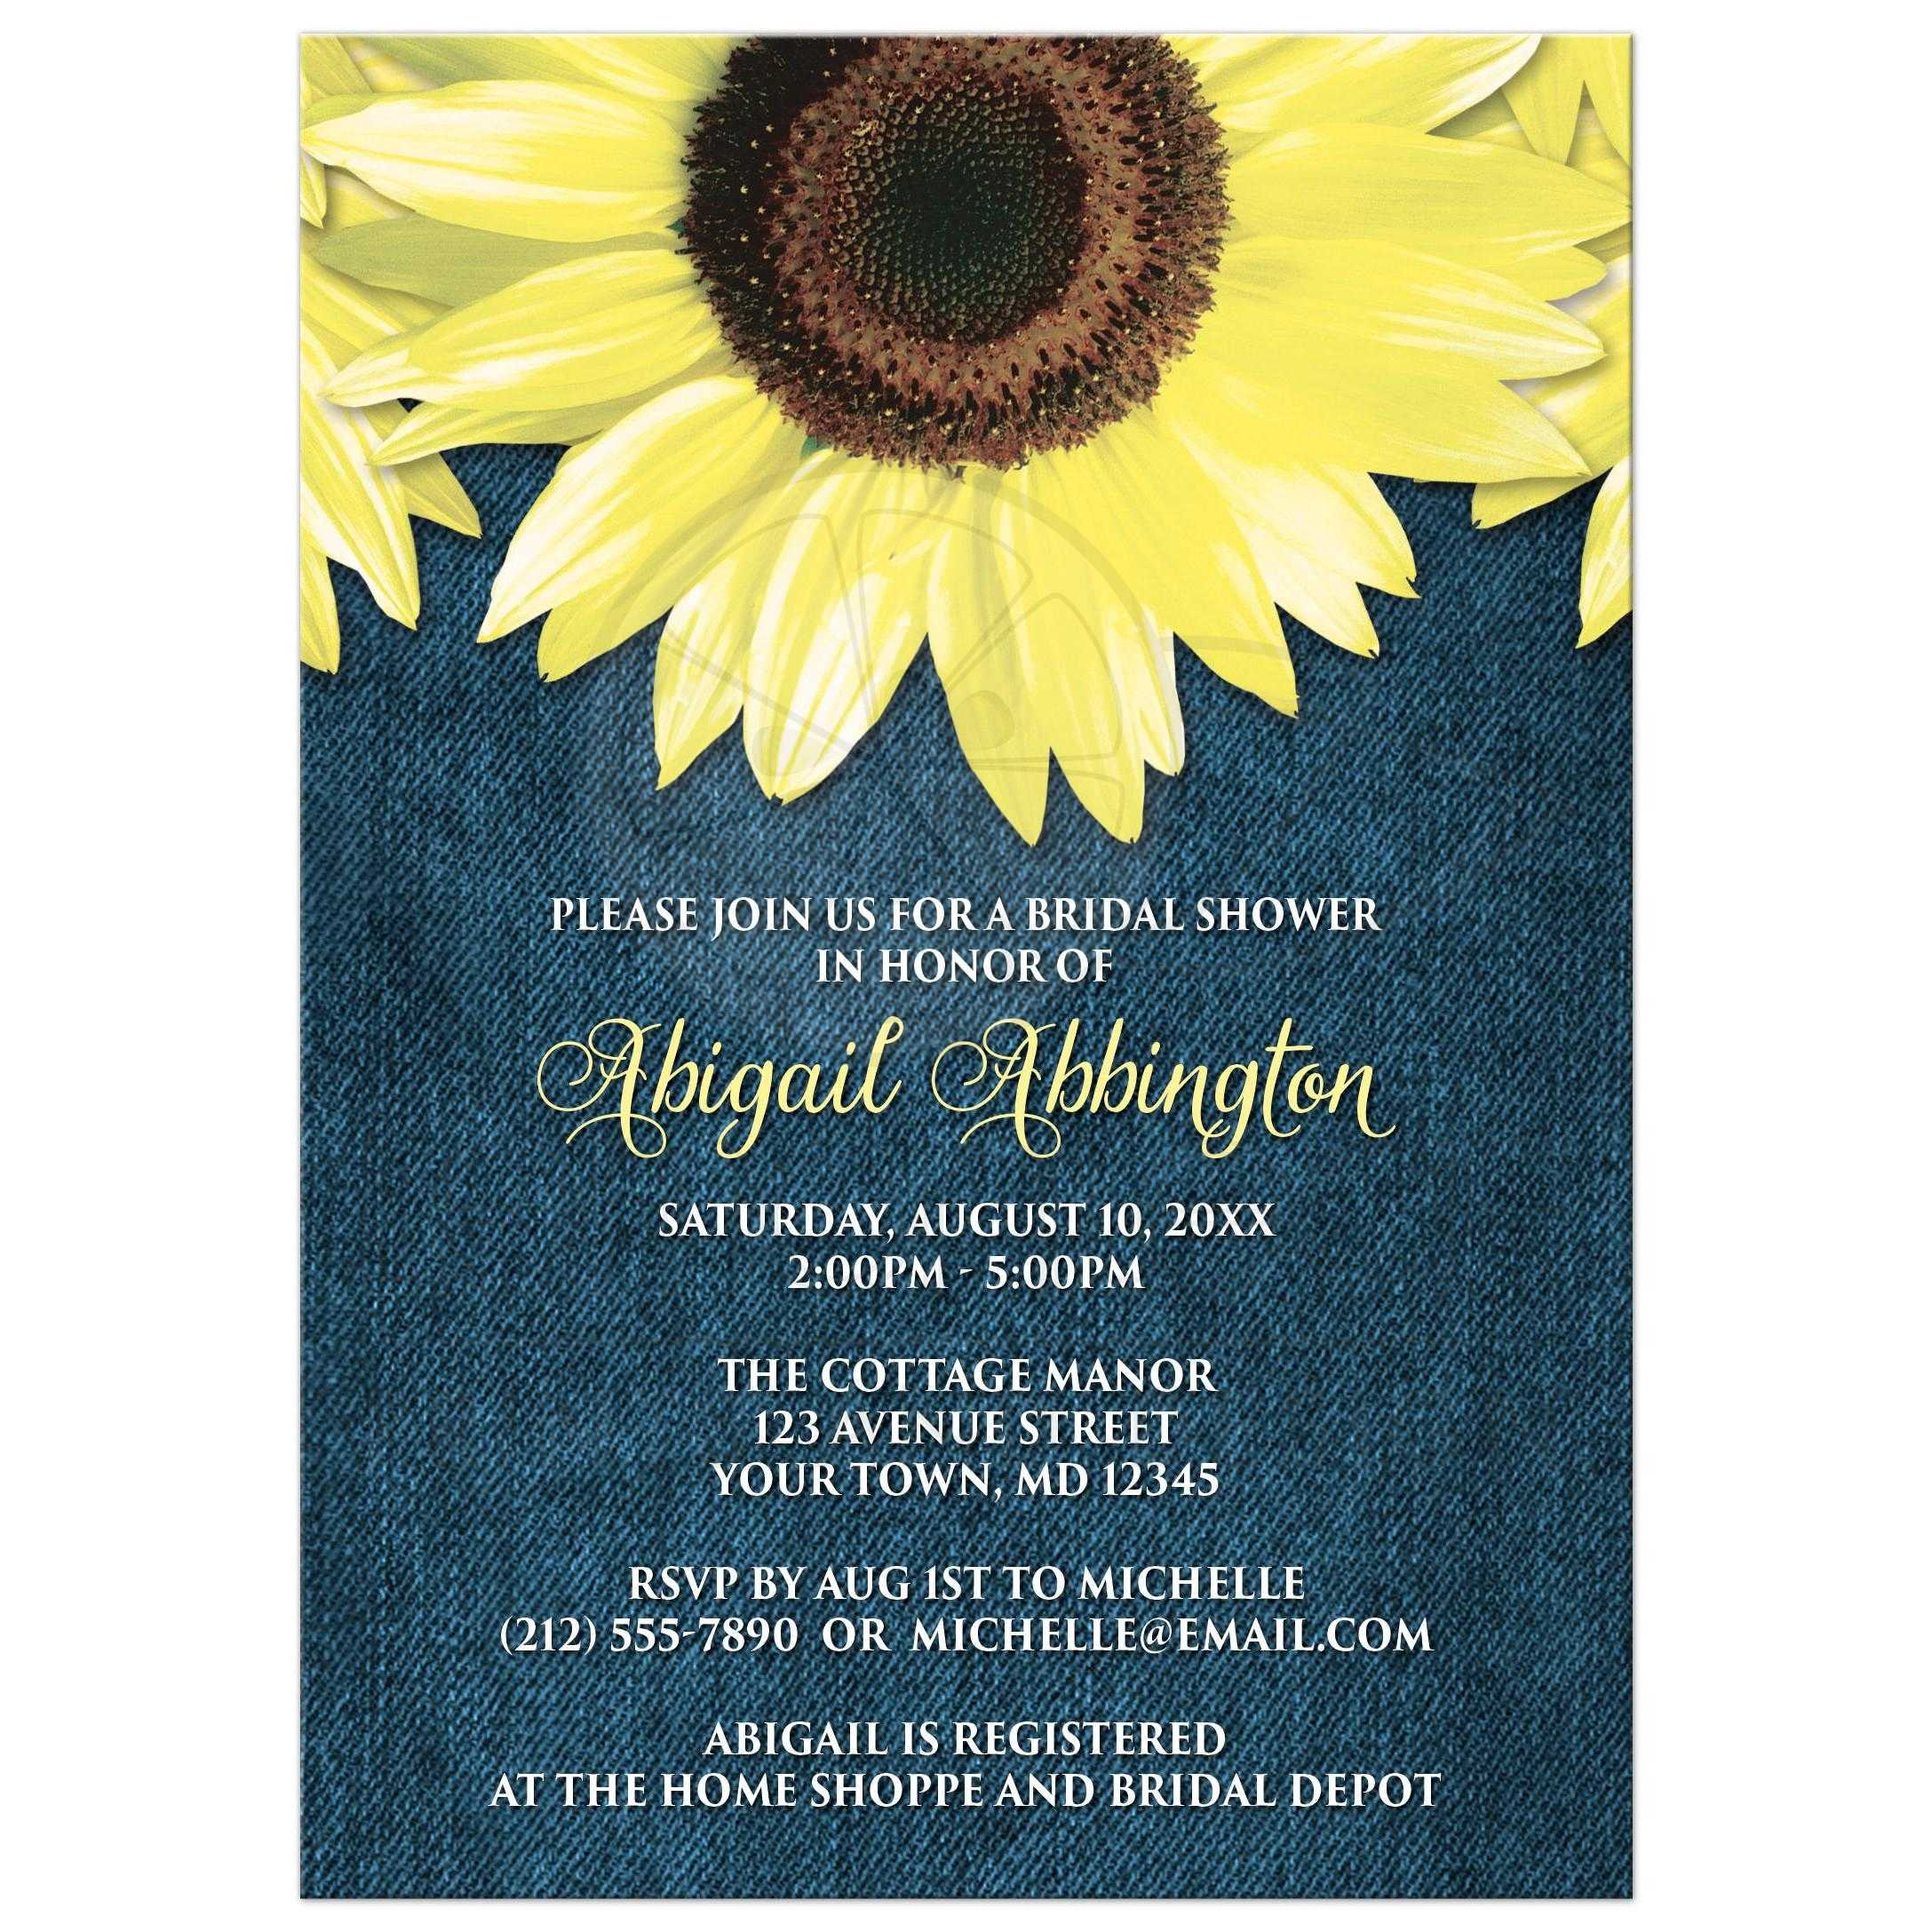 Shower invitations rustic sunflower and denim bridal shower invitations rustic sunflower and denim filmwisefo